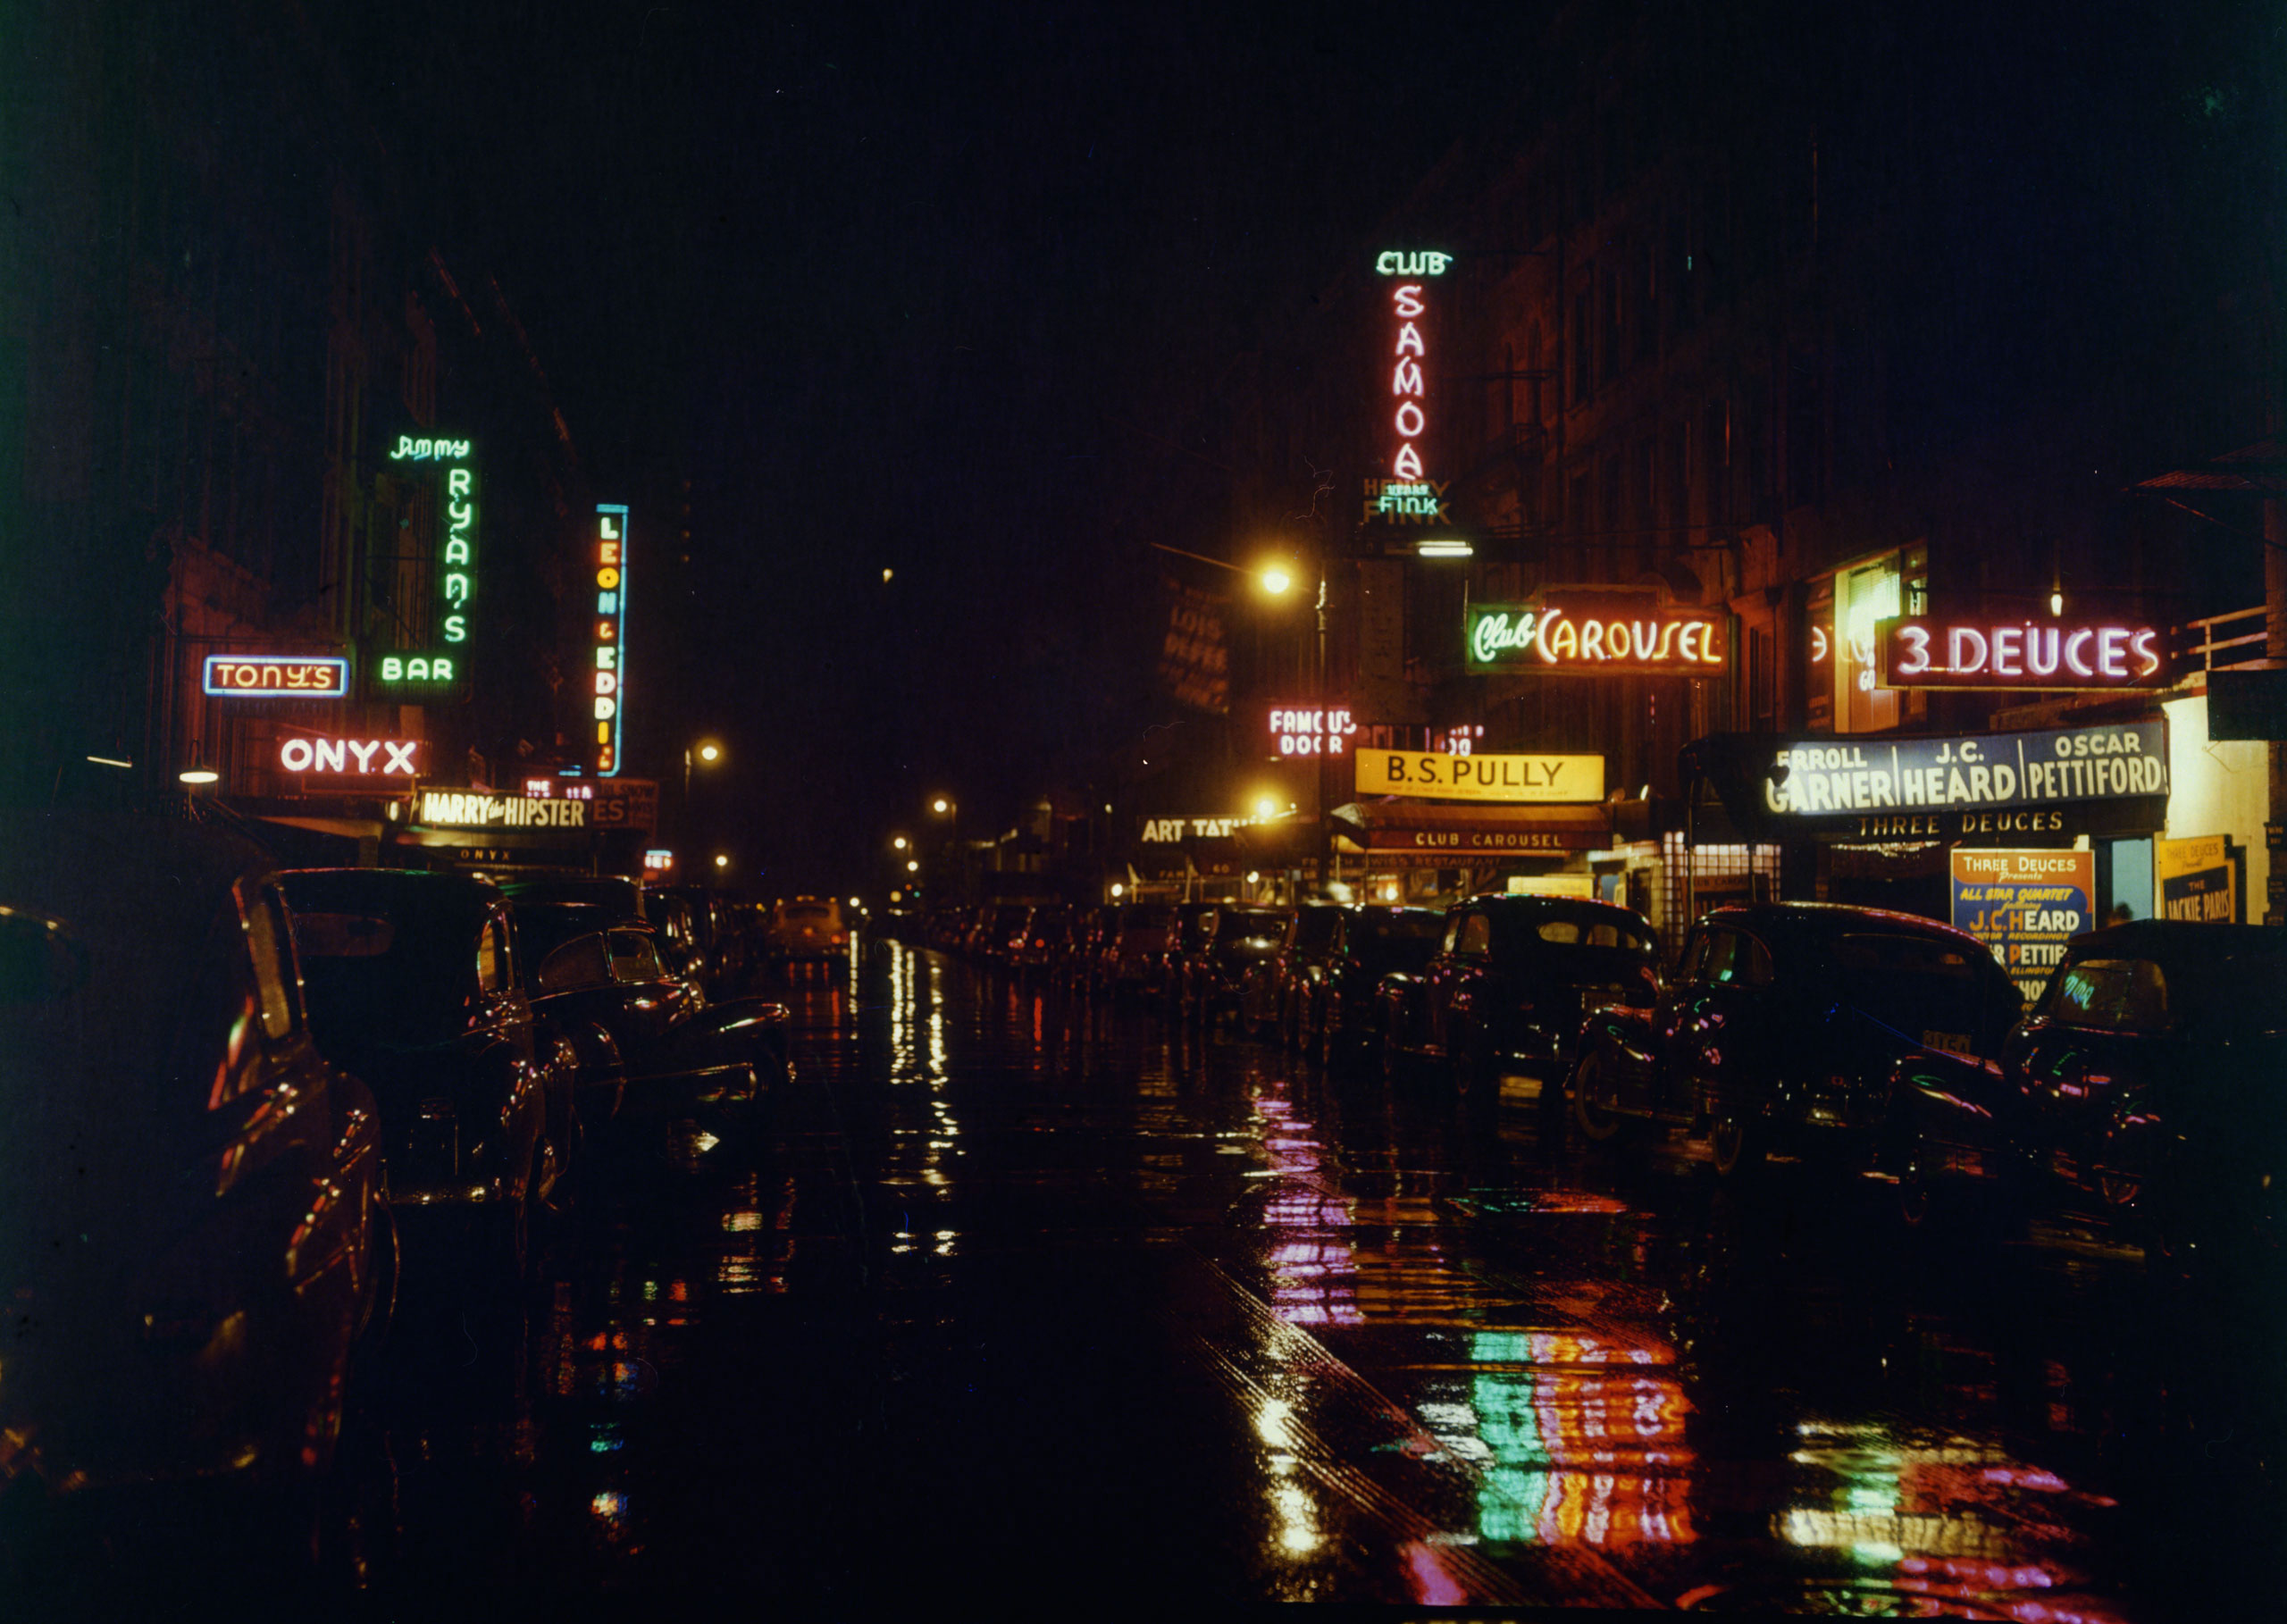 Road at nighttime, with neon signs reflecting on the wet pavement, and parked cars on either side of the street